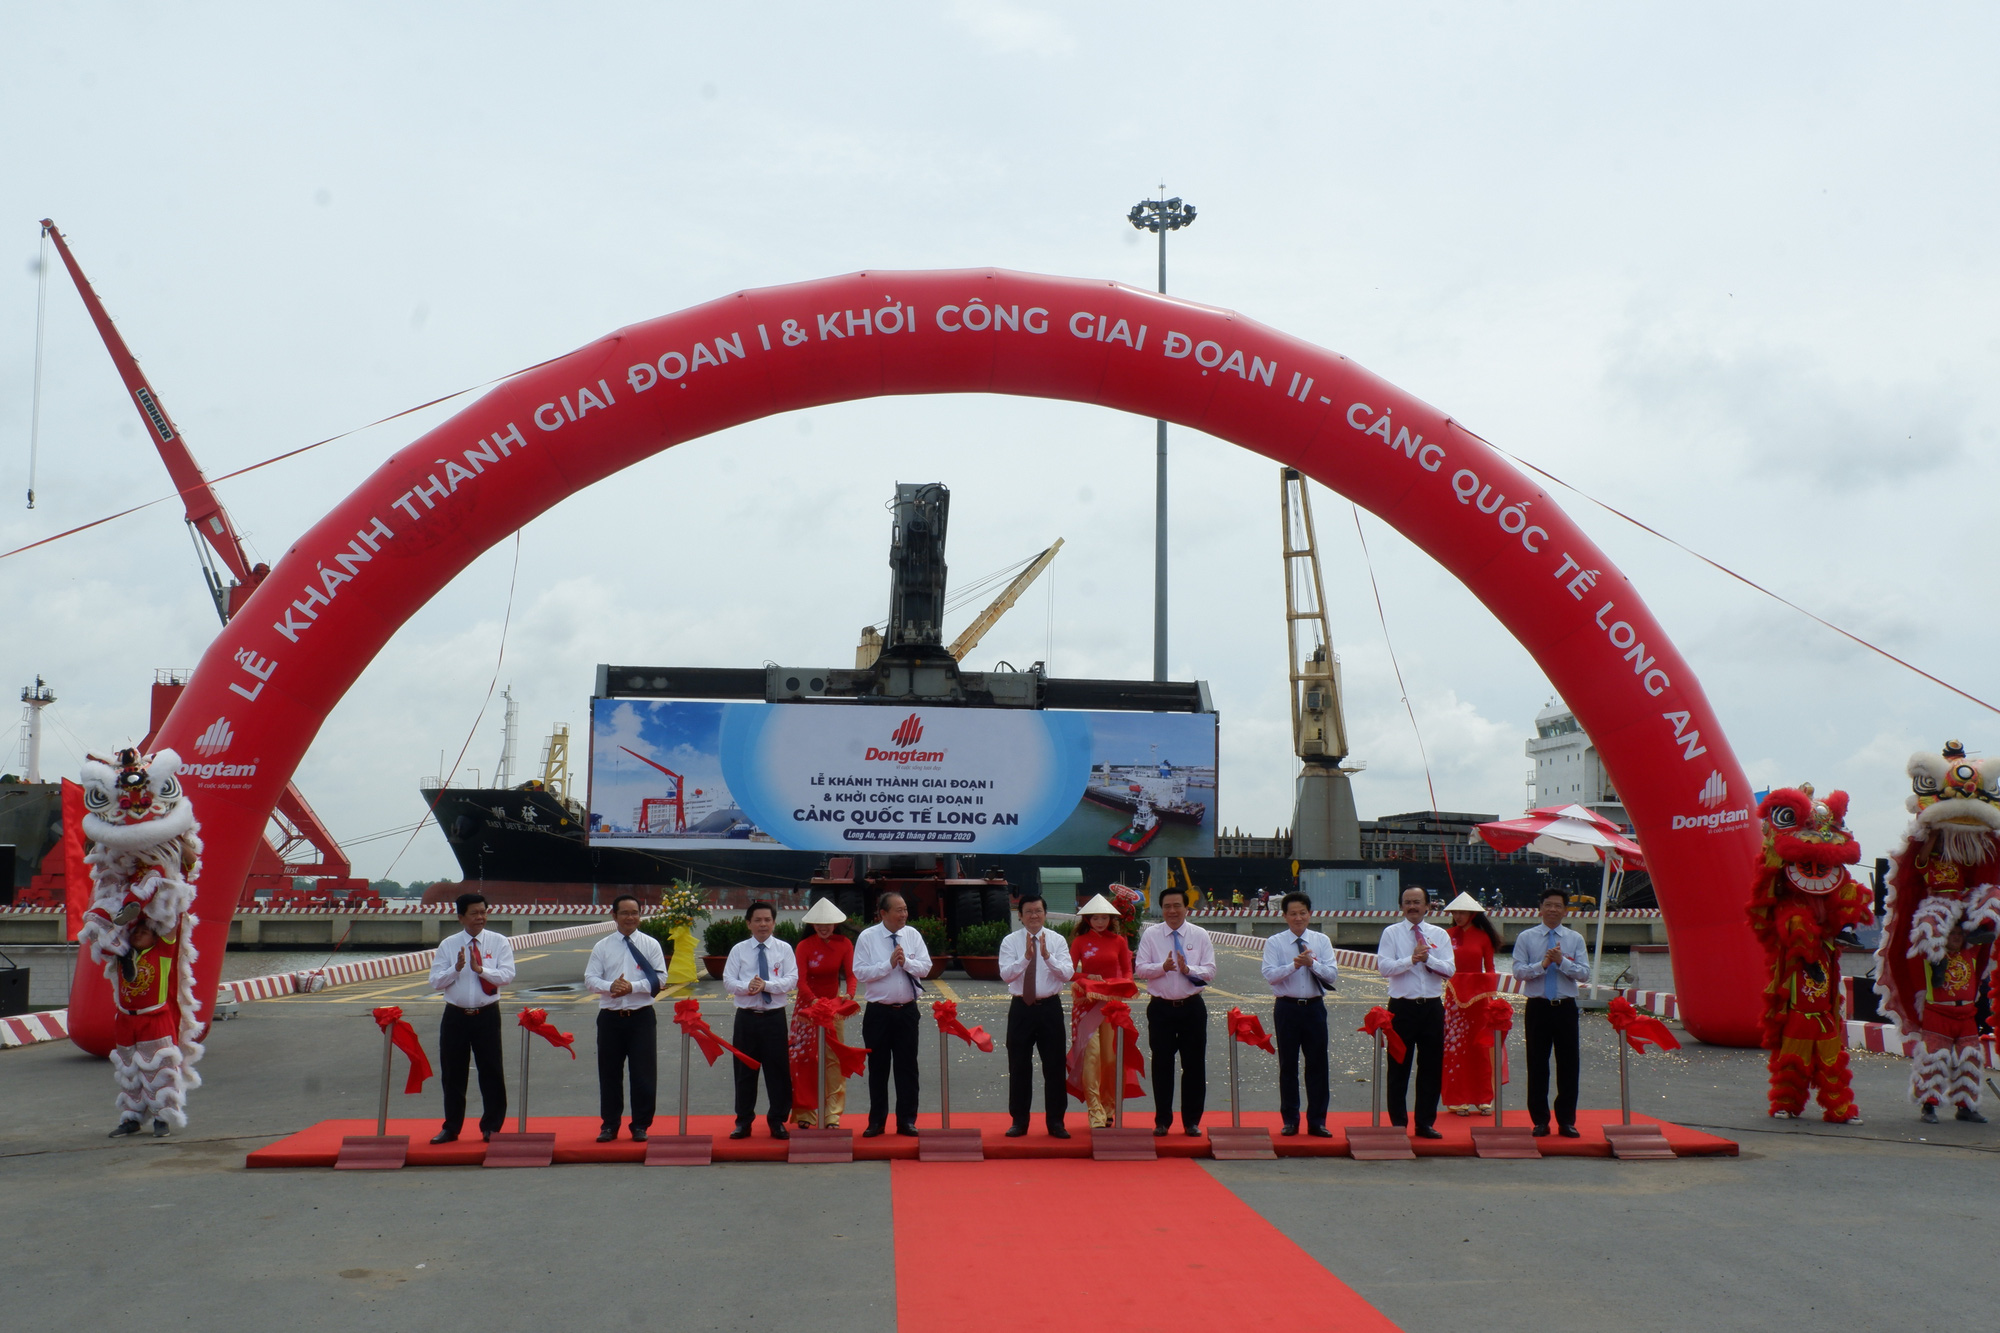 Int'l port in southern Vietnam marks completion of first phase